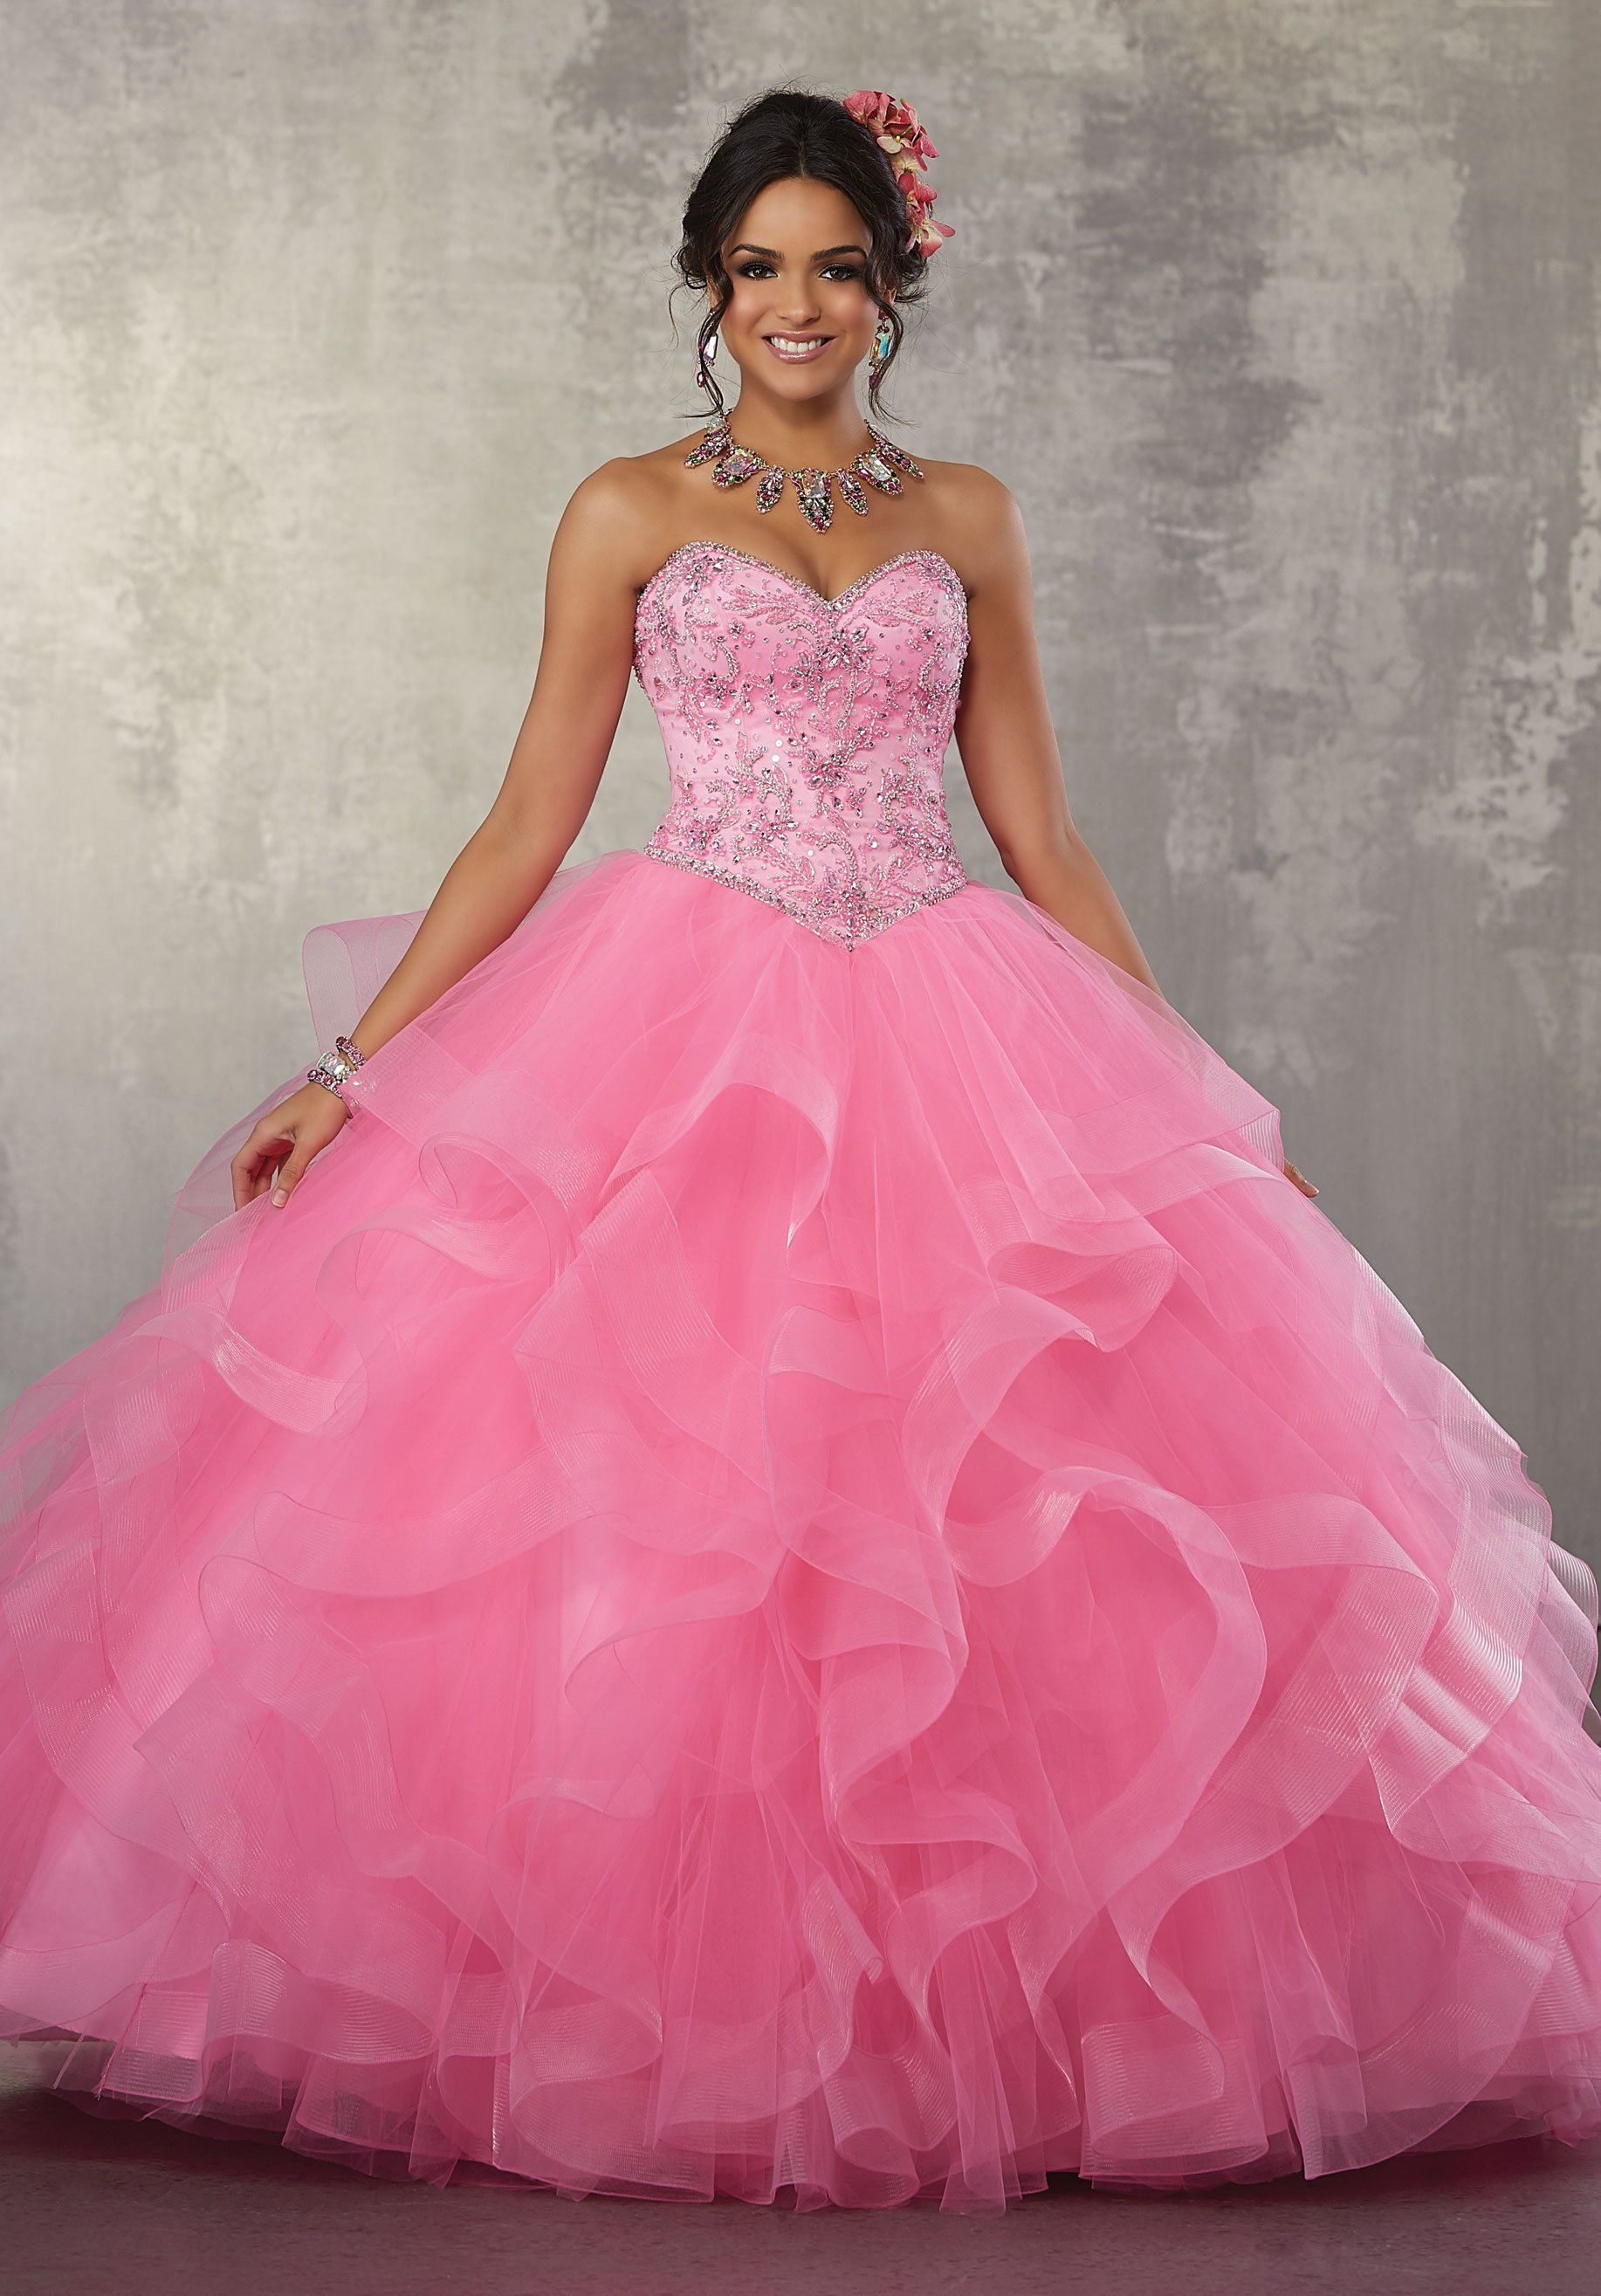 Strapless Ruffled Quinceanera Dress by Mori Lee Vizcaya 89166 ...